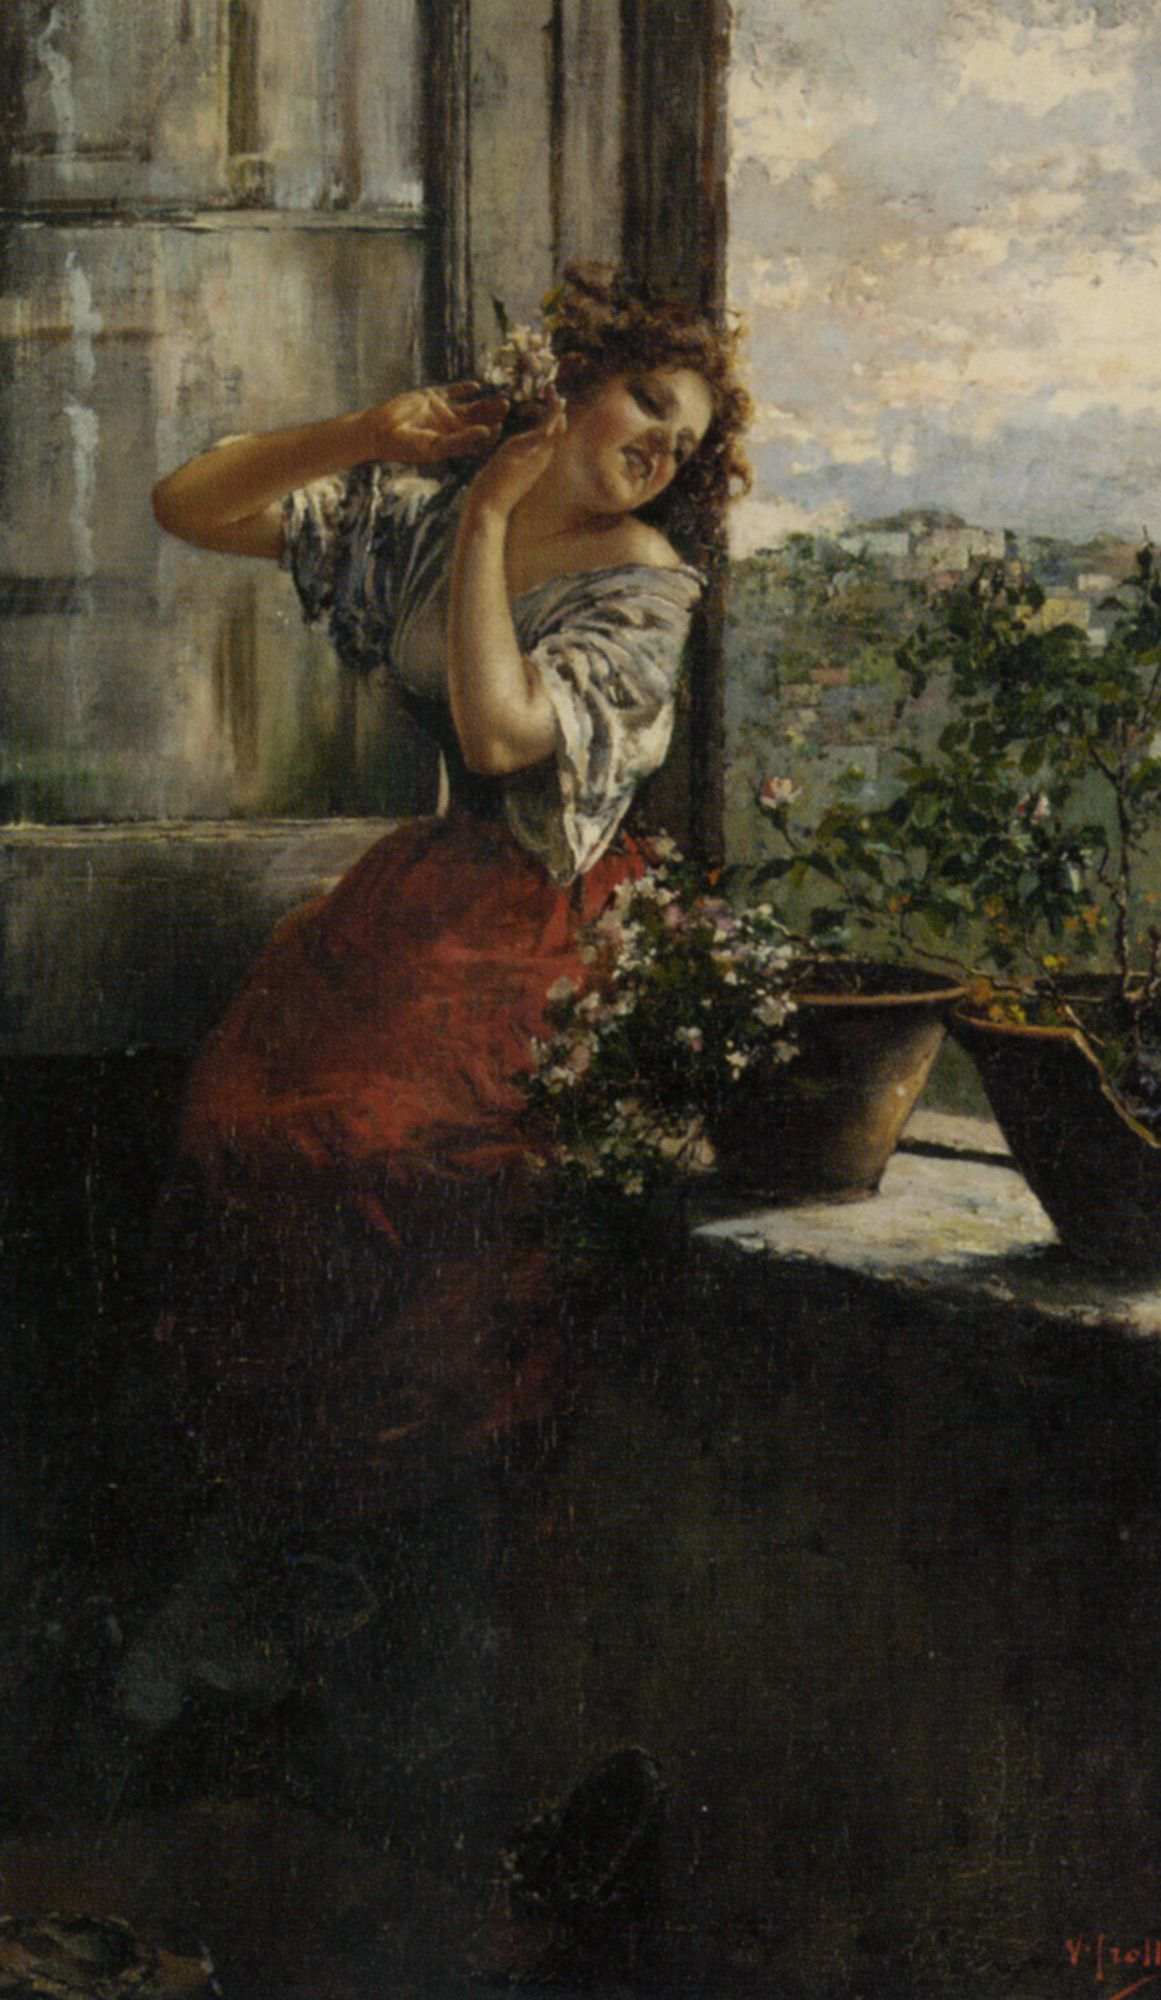 Distant Thoughts by Vincenzo Irolli